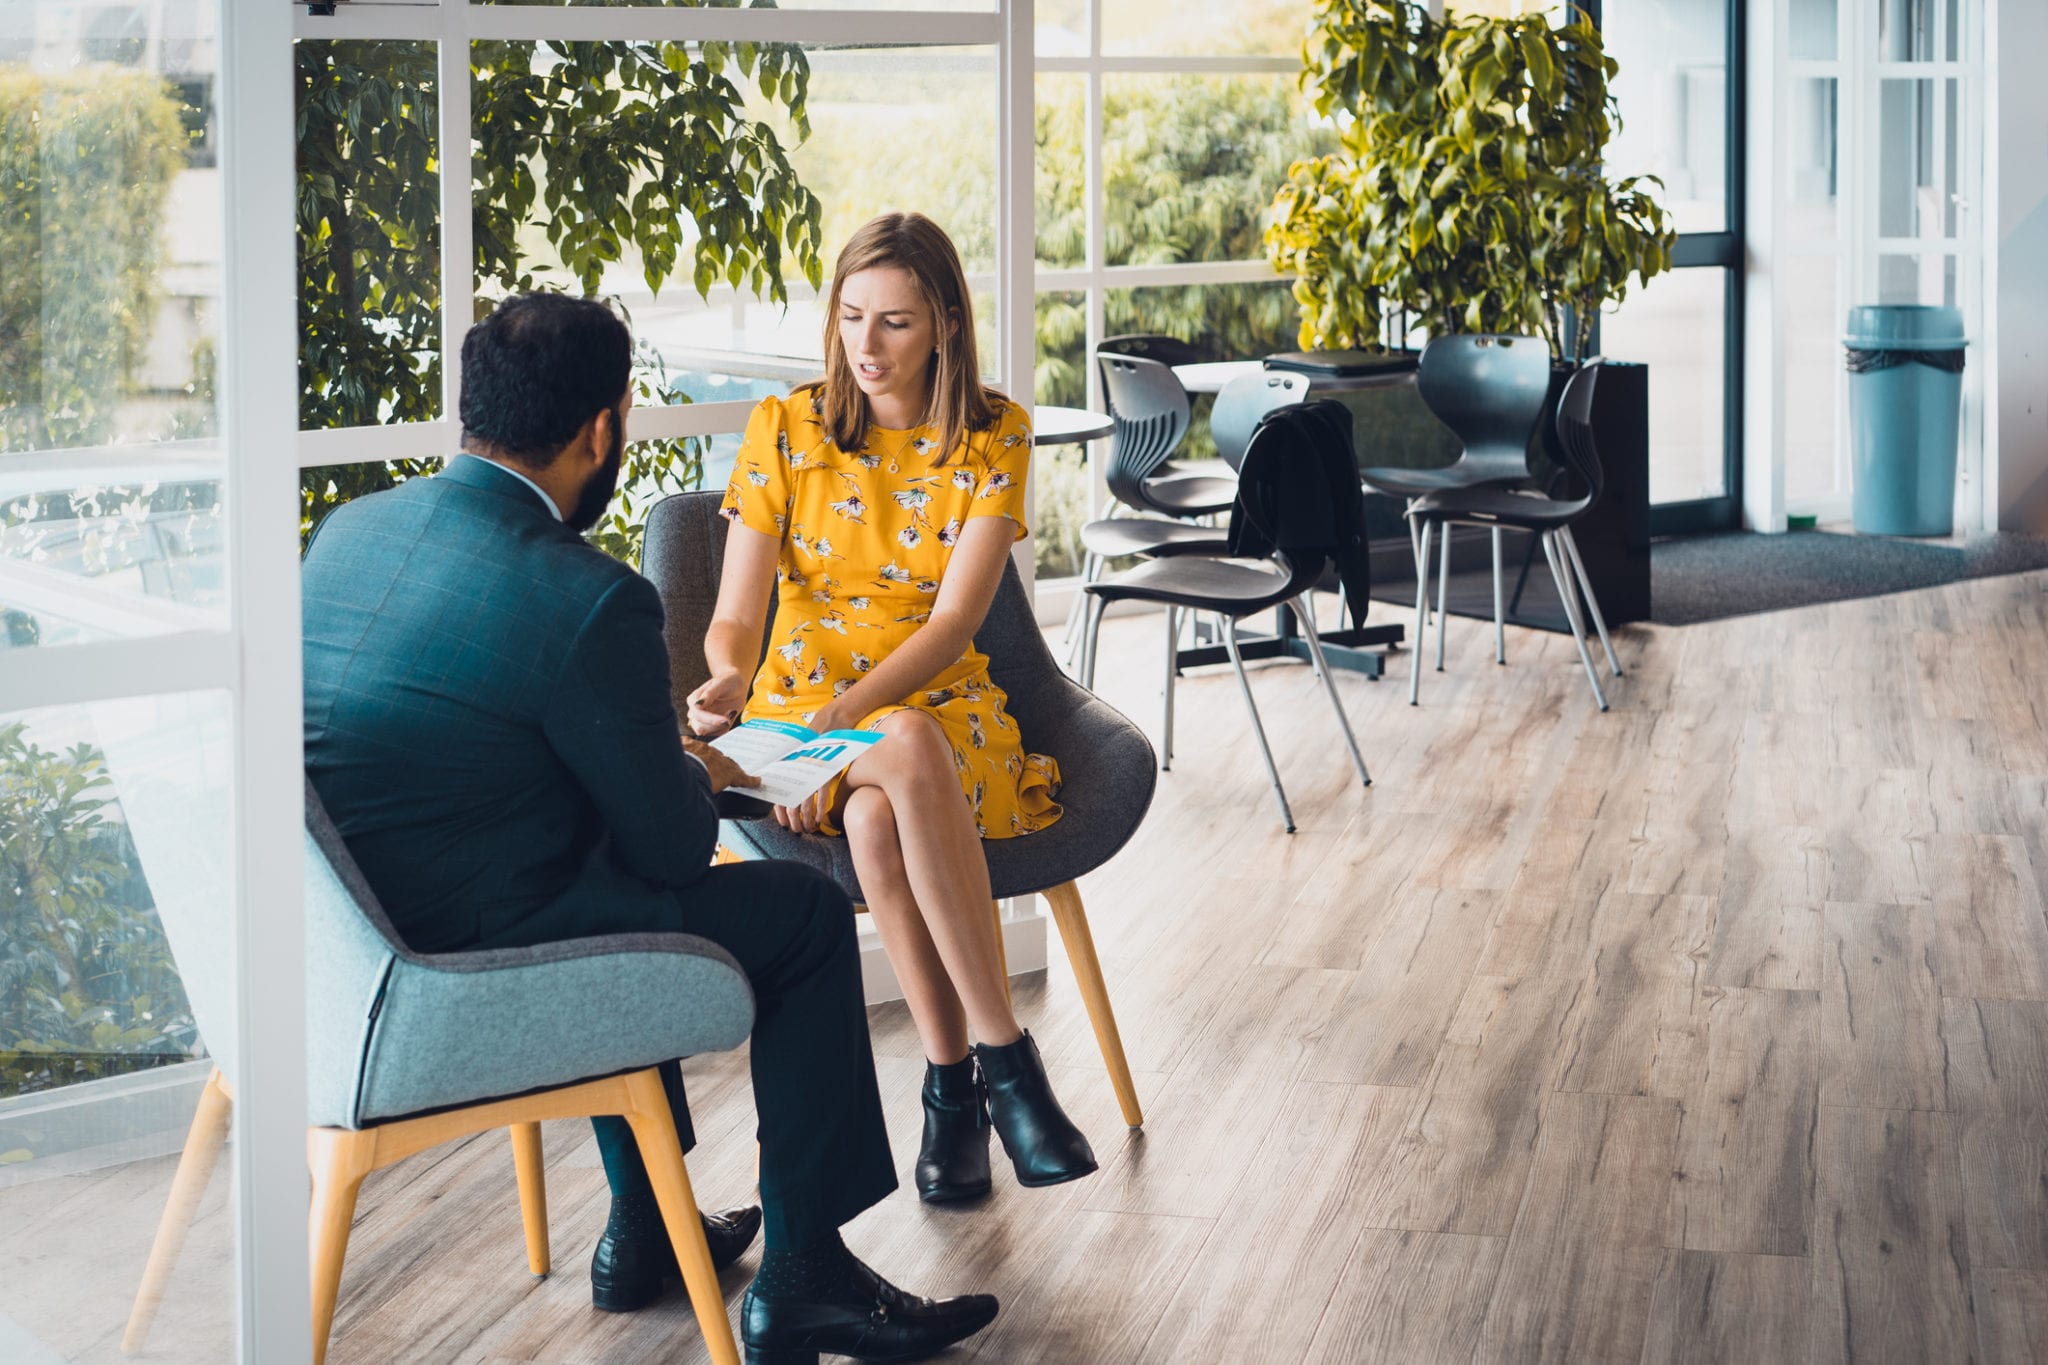 Man and woman have a business meeting in a small office